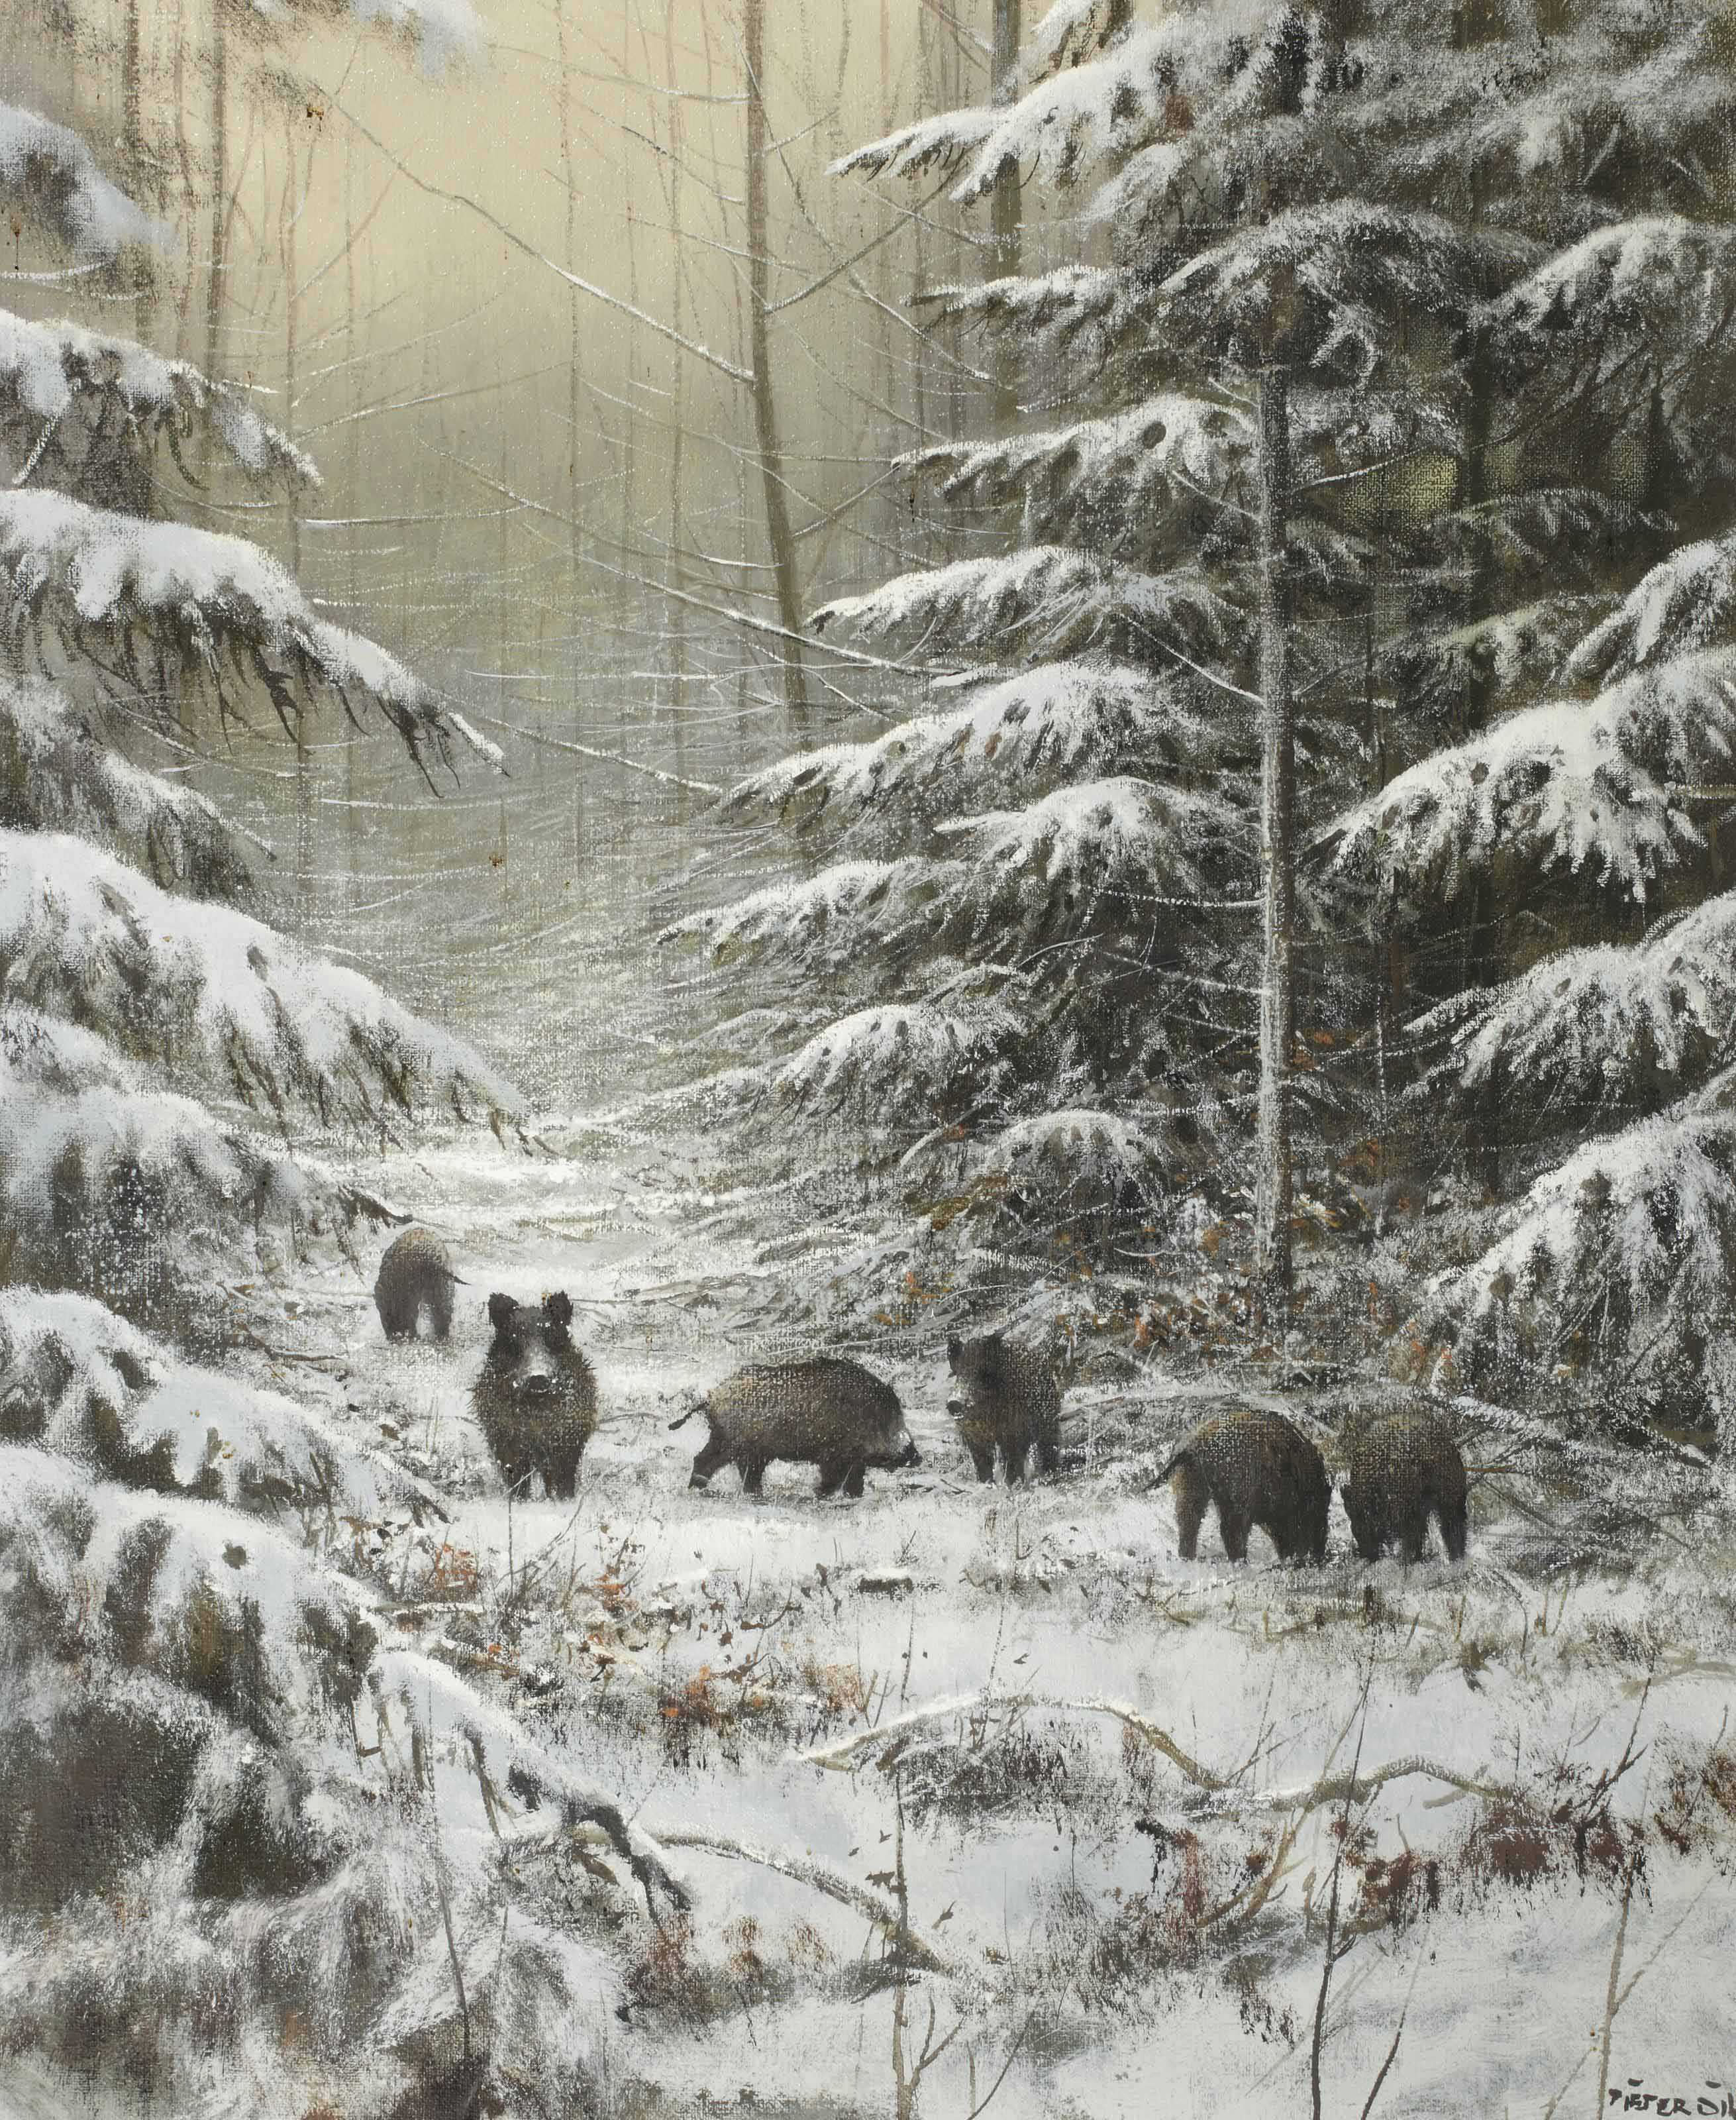 Boars in a winter landschap